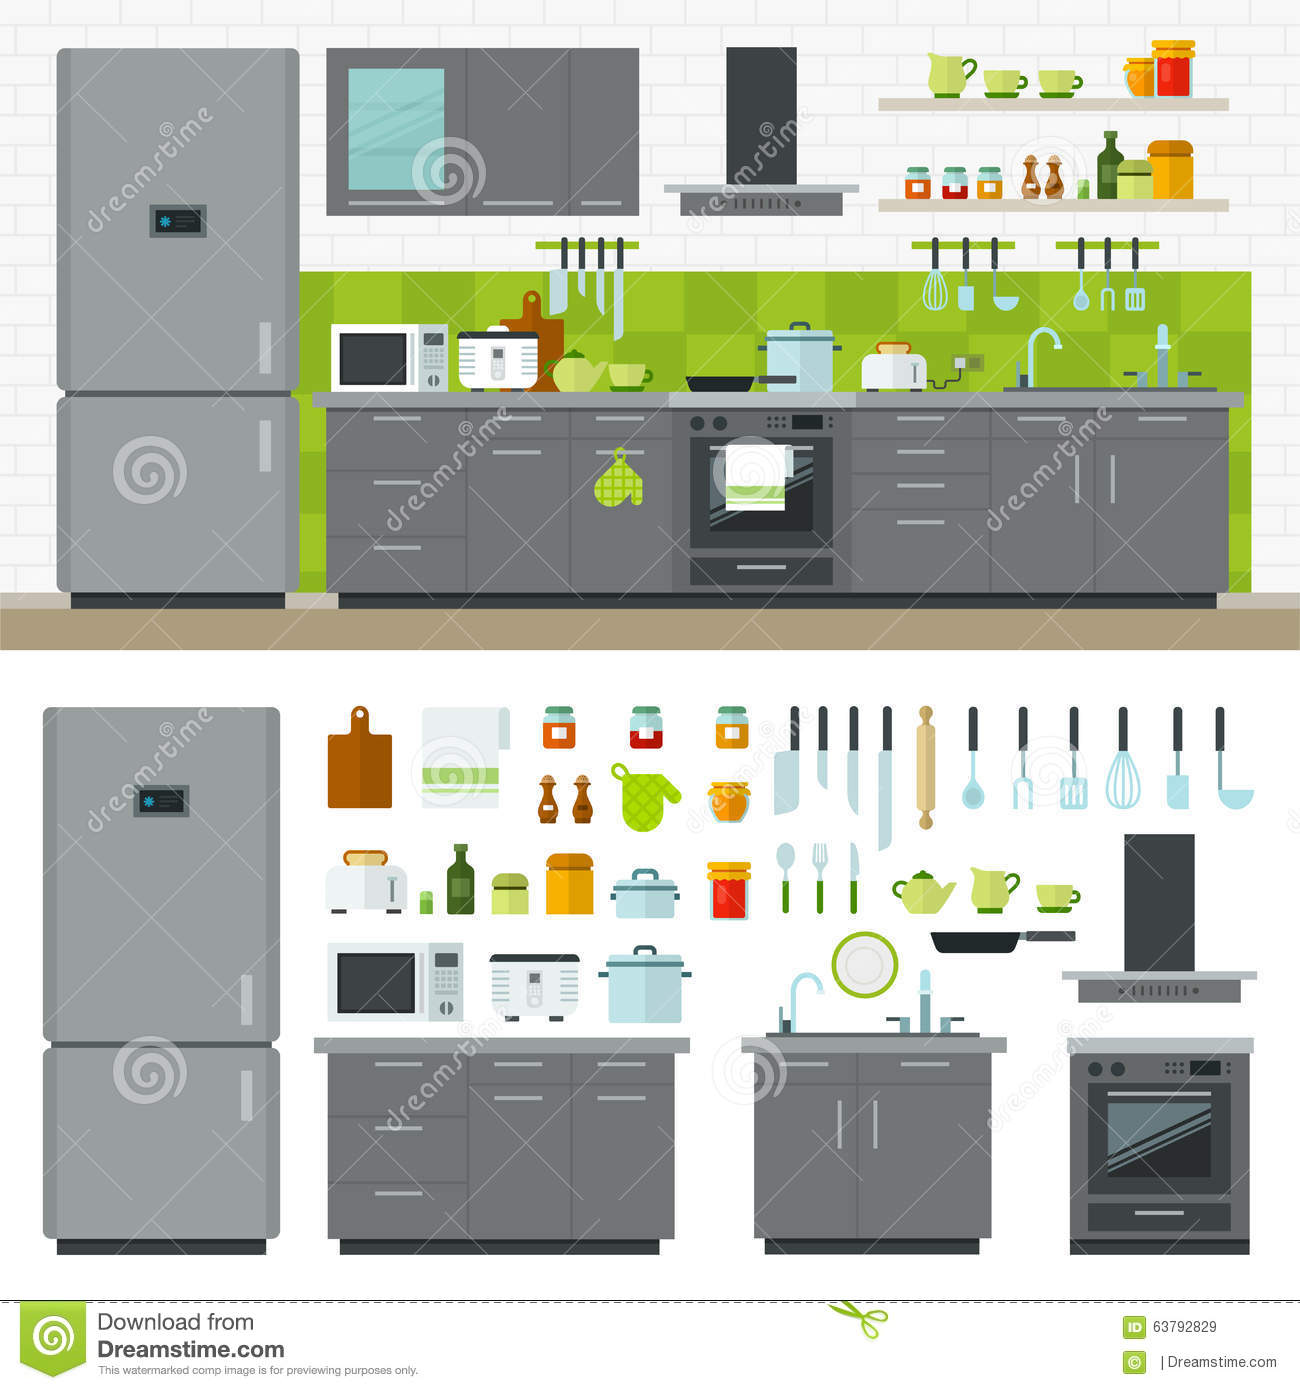 Modern Kitchen Utensils modern kitchen utensils, furniture, interior stock vector - image